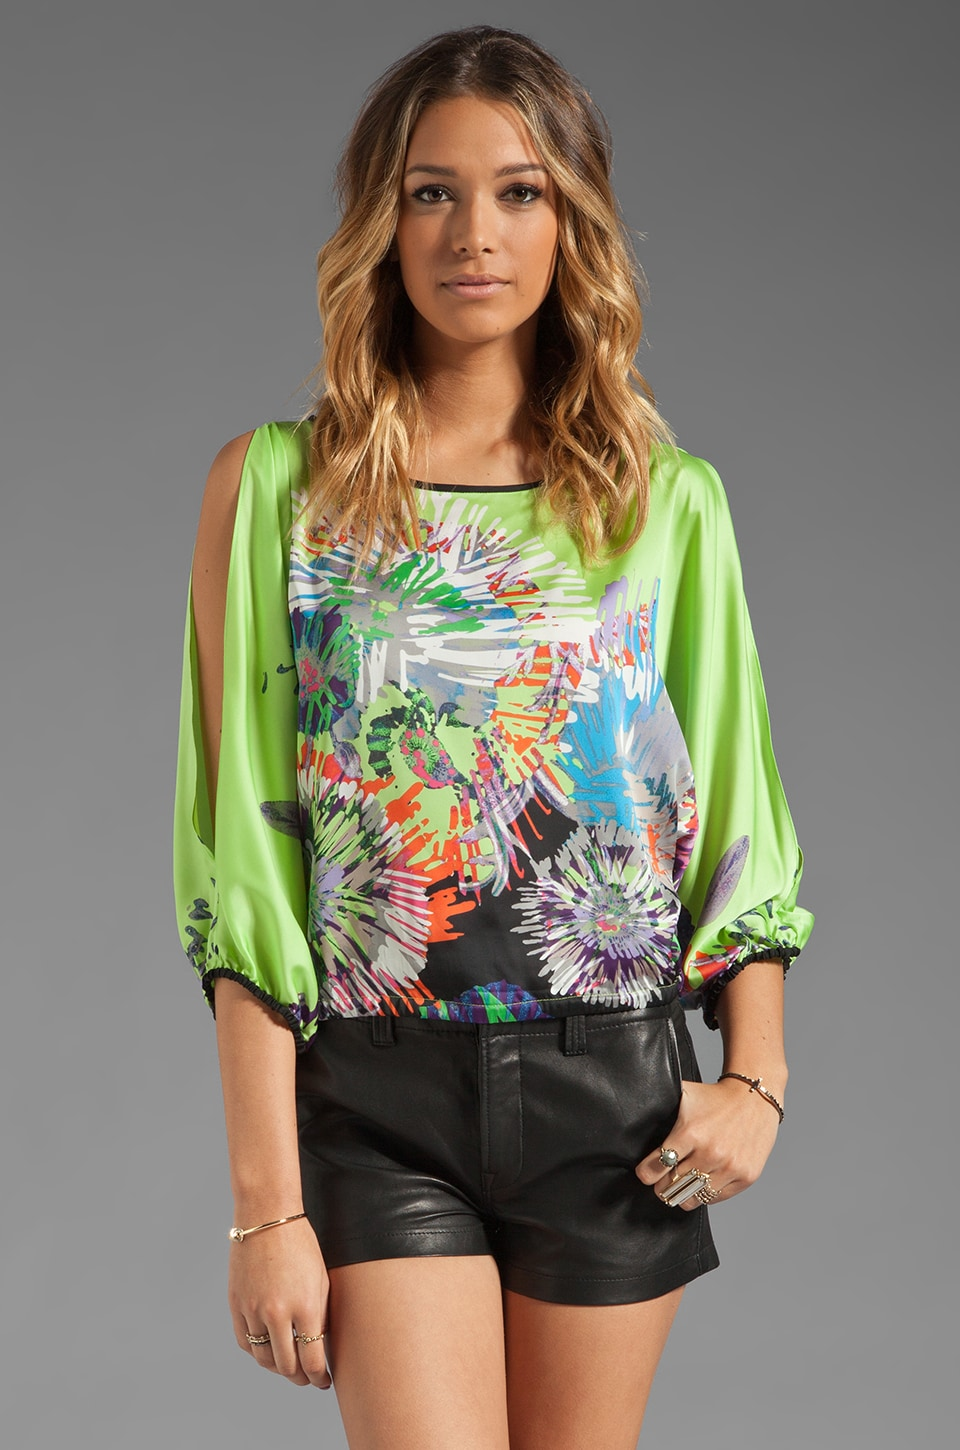 BCBGMAXAZRIA Floral Top in Neon Yellow